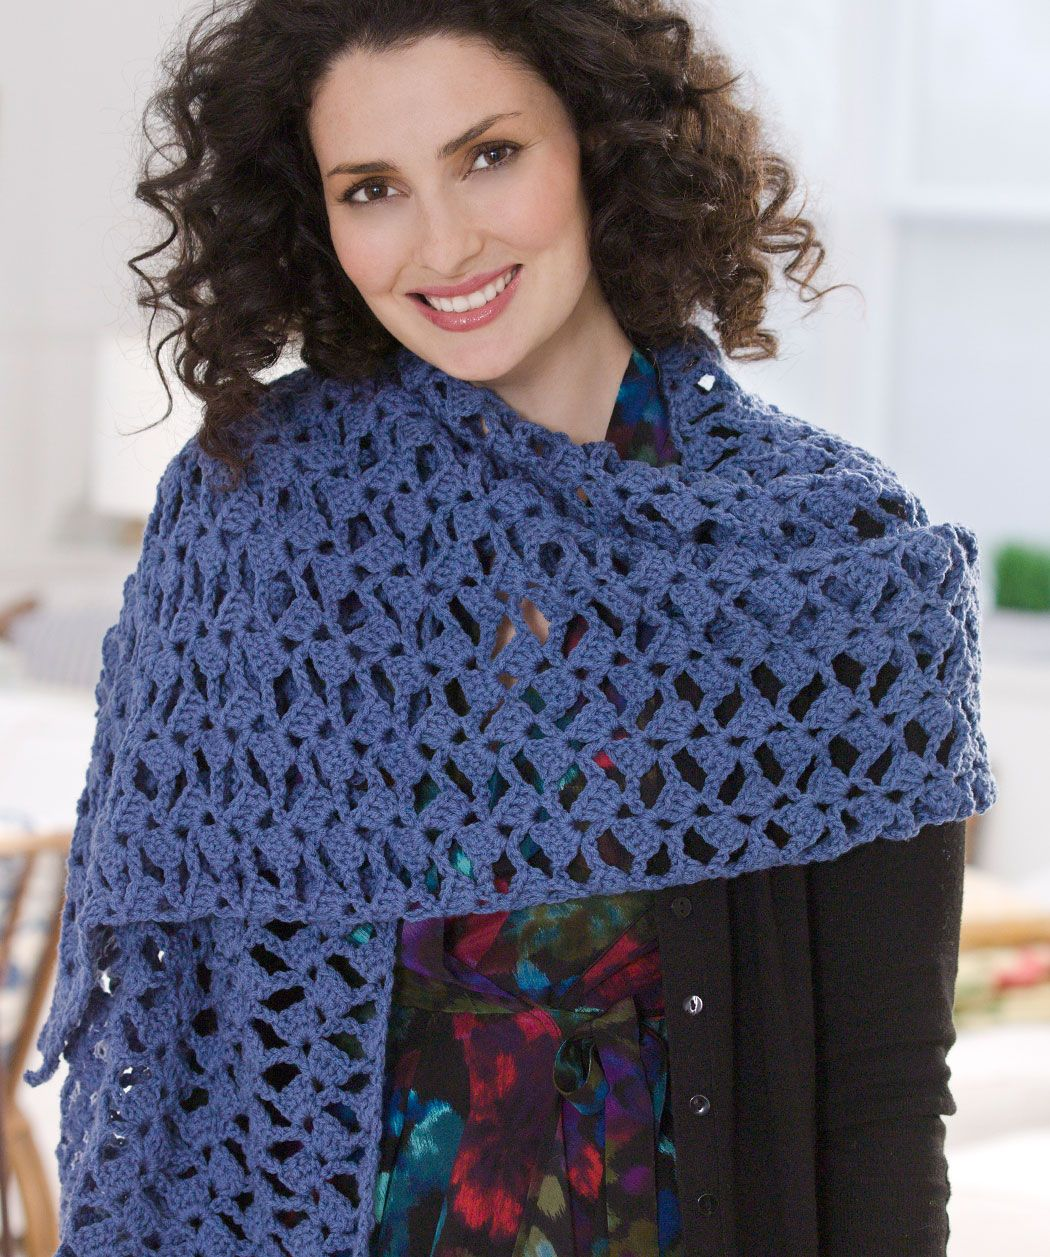 free shawl crochet pattern | SNOOD & ECHARPES CROCHET | Pinterest ...